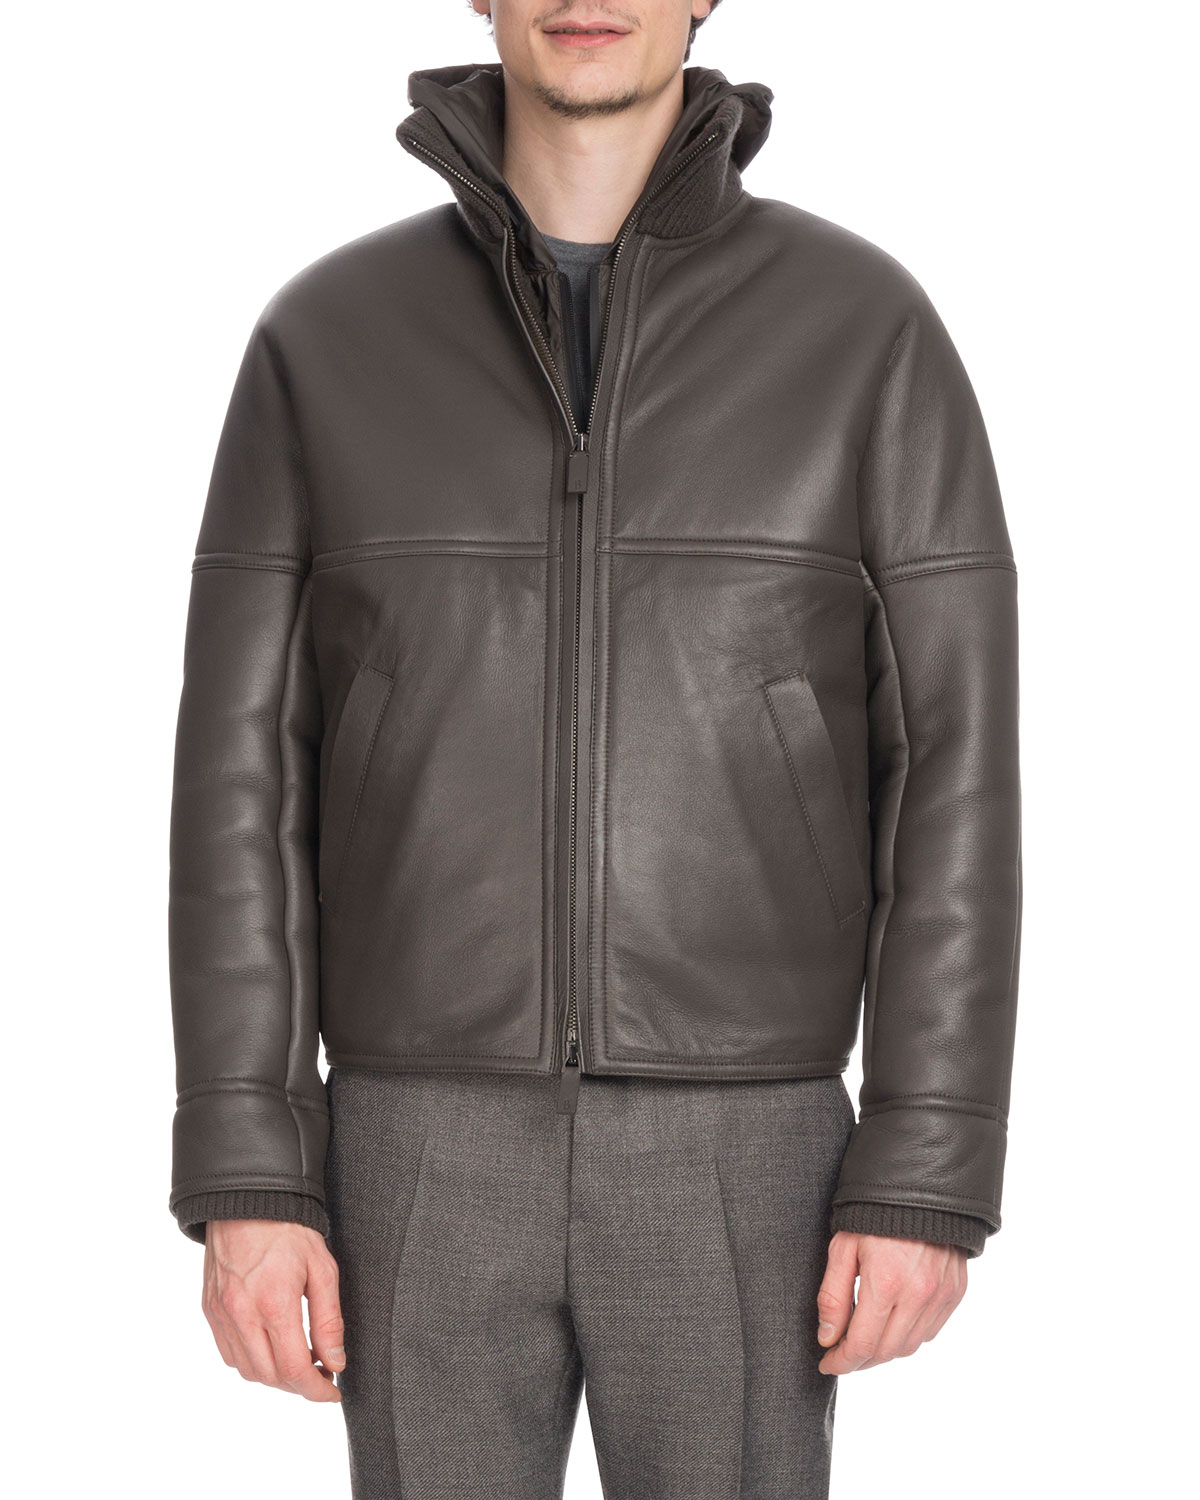 Berluti Men S Leather Bomber Jacket With Lamb Fur Lining Neiman Marcus